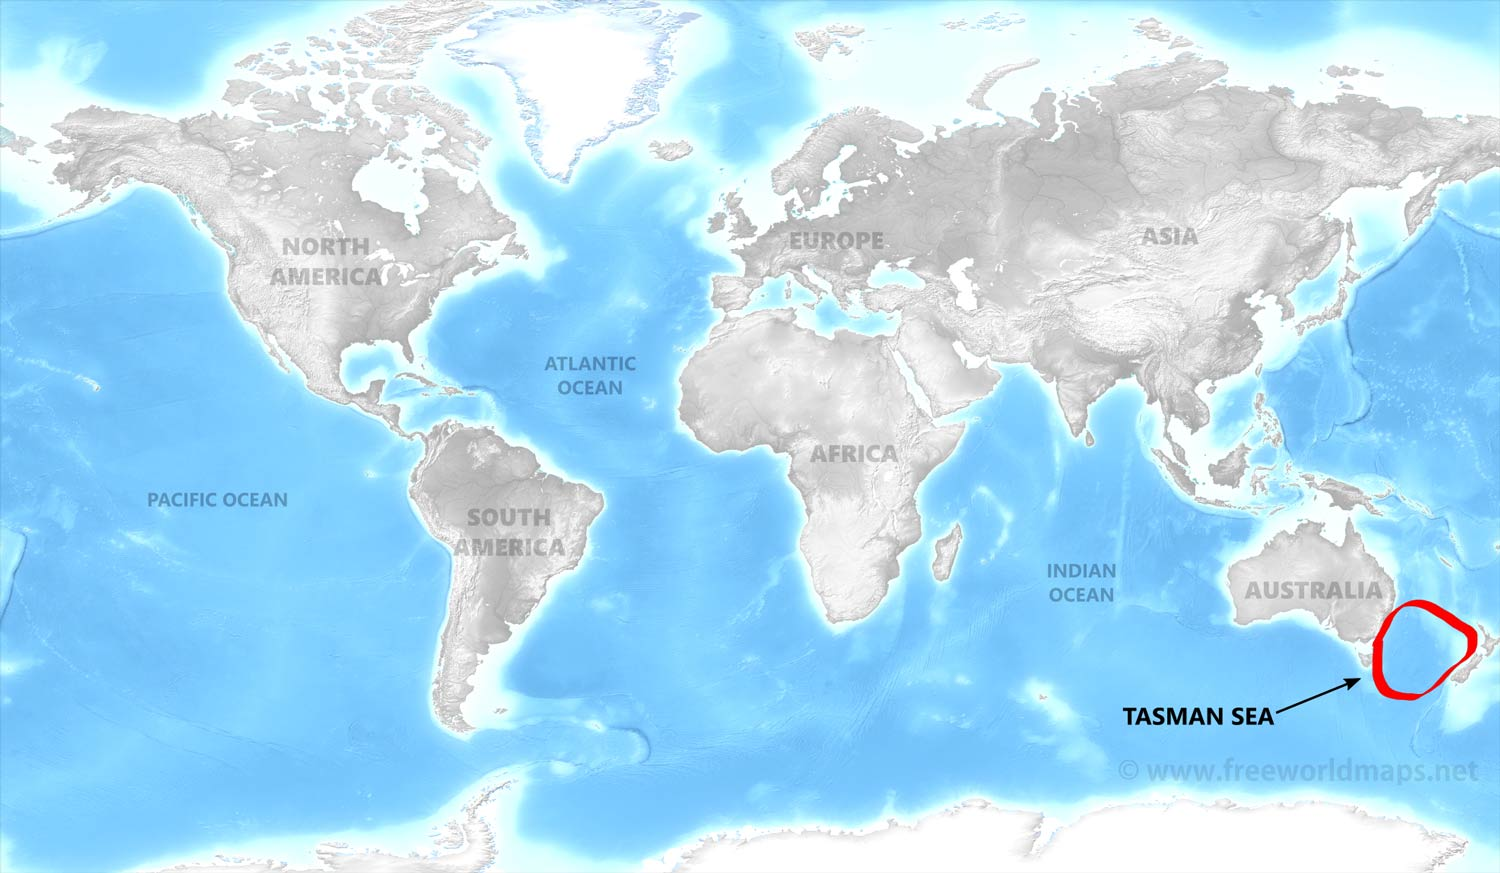 Tasman Sea map - by Freeworldmaps.net on world map arctic ocean, world map aegean sea, world map red sea, world map bering strait, world map iceland, world map ural mountains, world map barents sea, world map persian gulf, world map coral sea, world map bering sea, world map hudson bay, world map adriatic sea, world map caspian sea, world map black sea, world map arabian sea, world map norwegian sea, world map japan, world map english channel, world map baltic sea, world map pacific ocean,